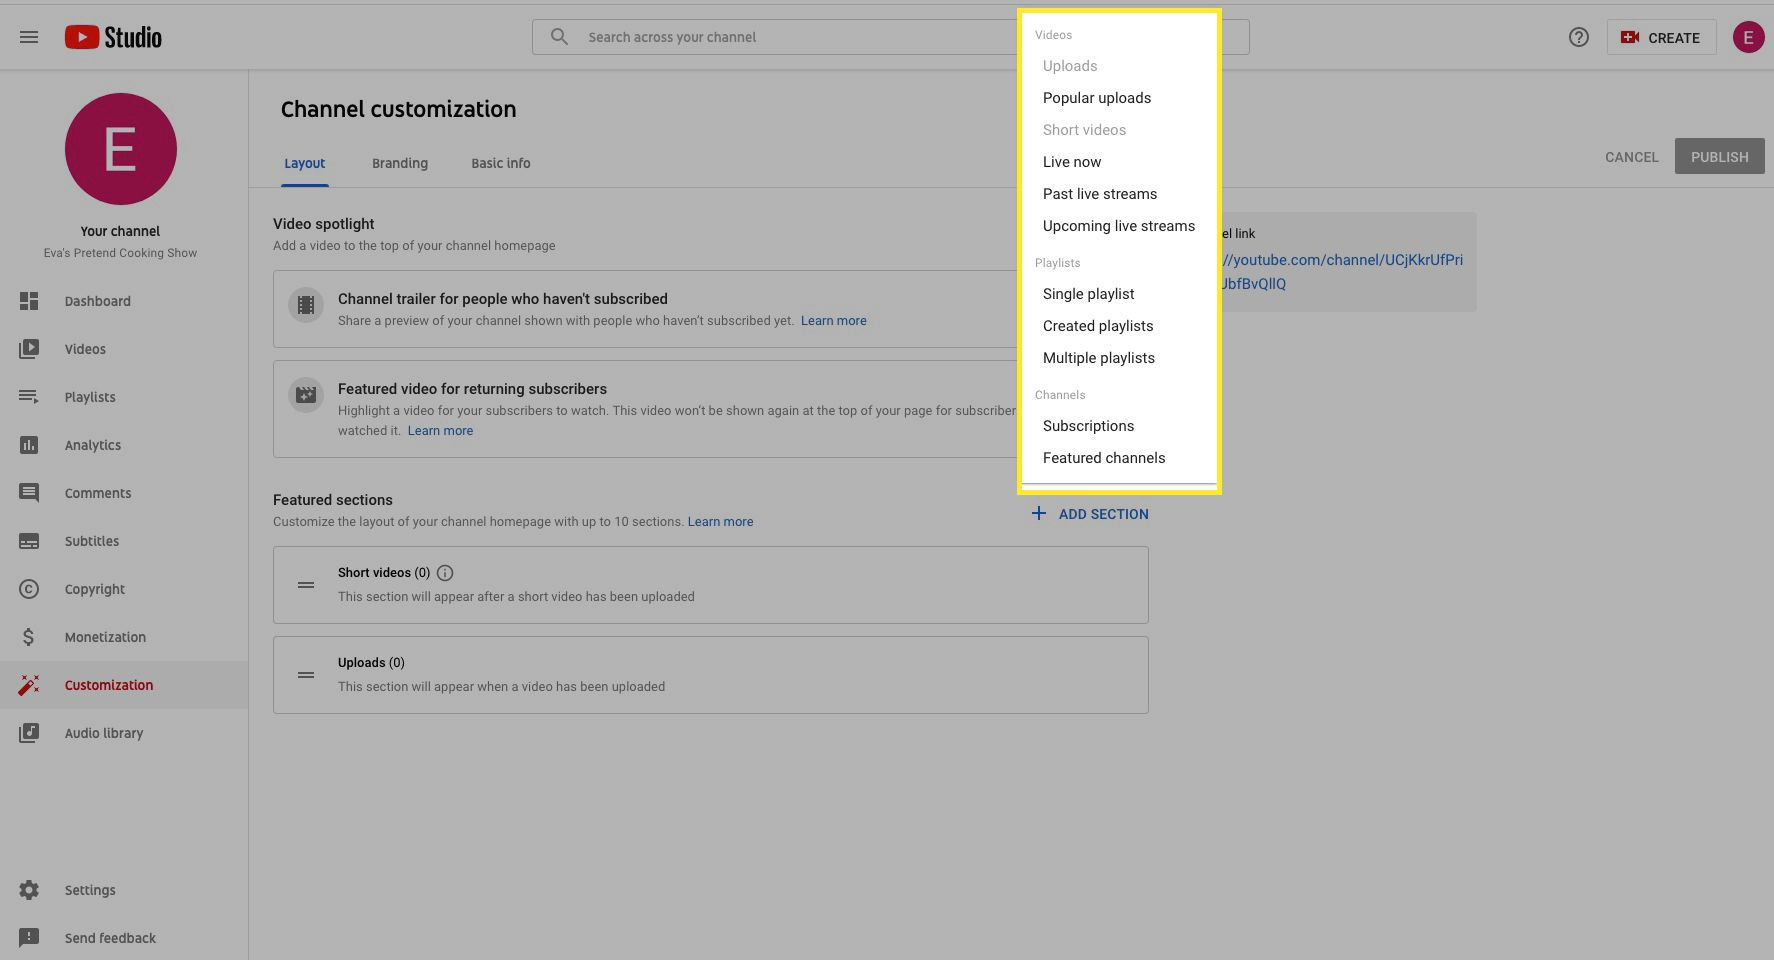 You can add up to 10 sections for your channel, including Popular Uploads, Past Livestreams, Upcoming Livestreams, and more.